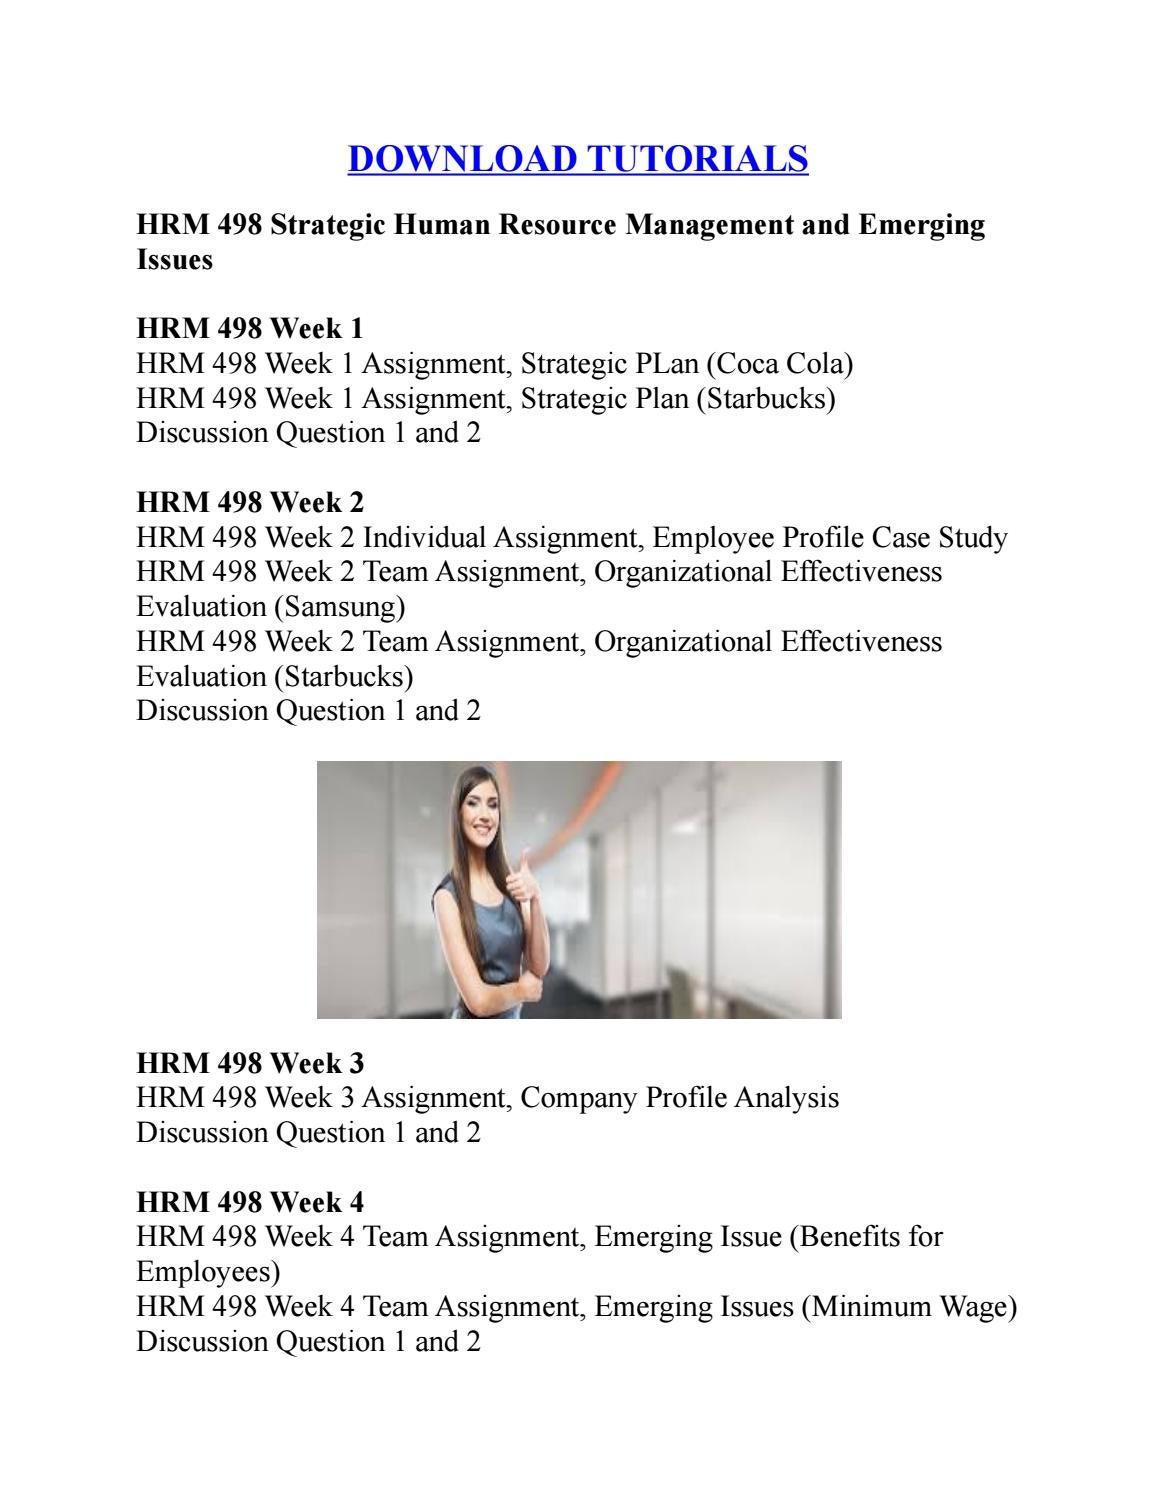 HRM 498 Strategic Human Resource Management and Emerging